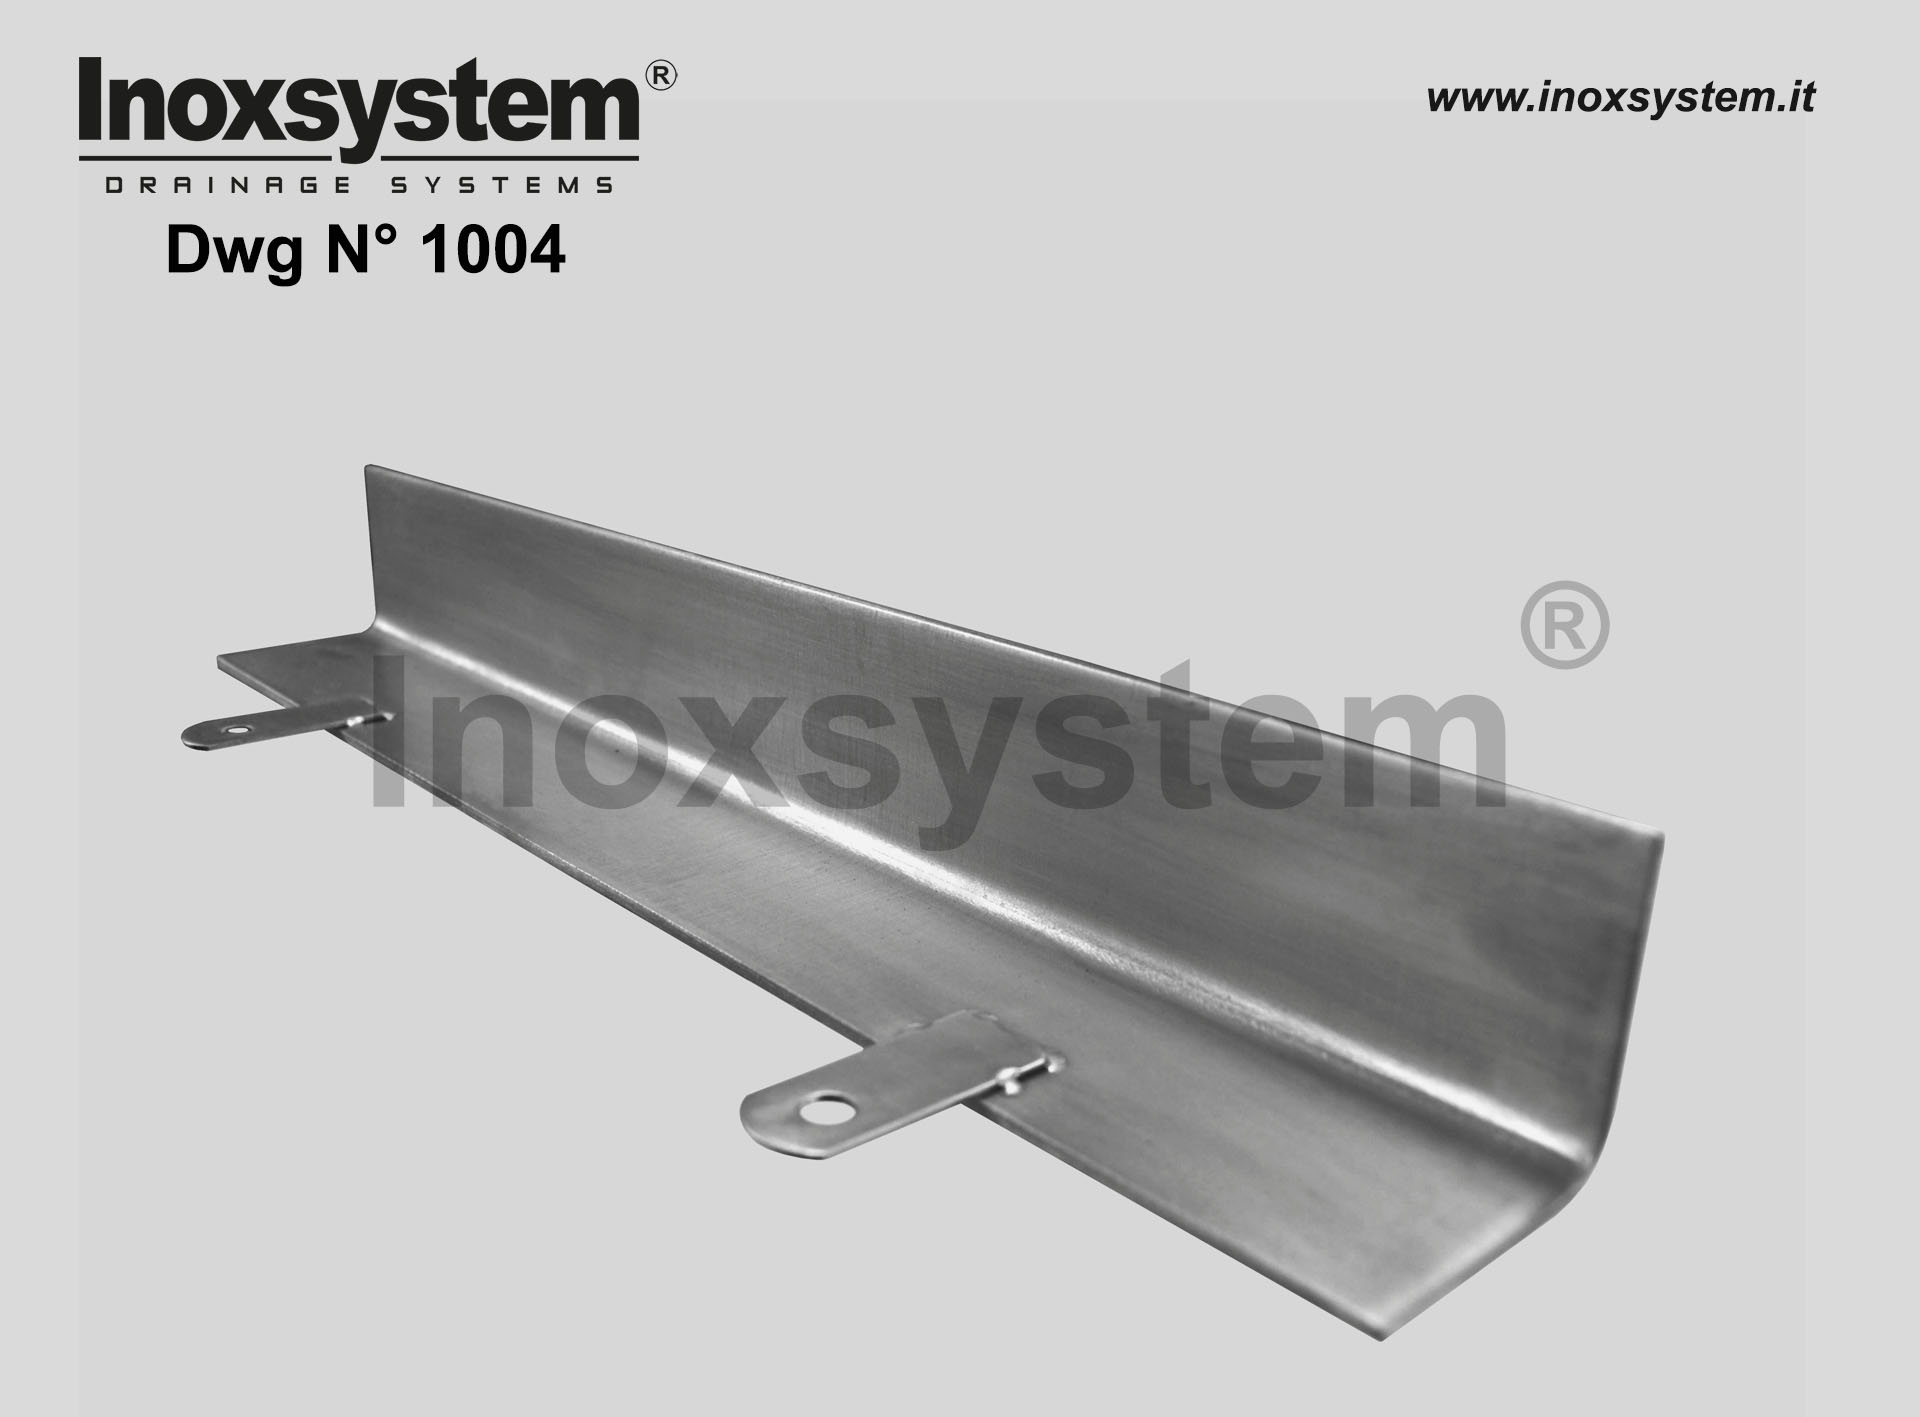 Stainless steel terminal profiles or floor protection edges